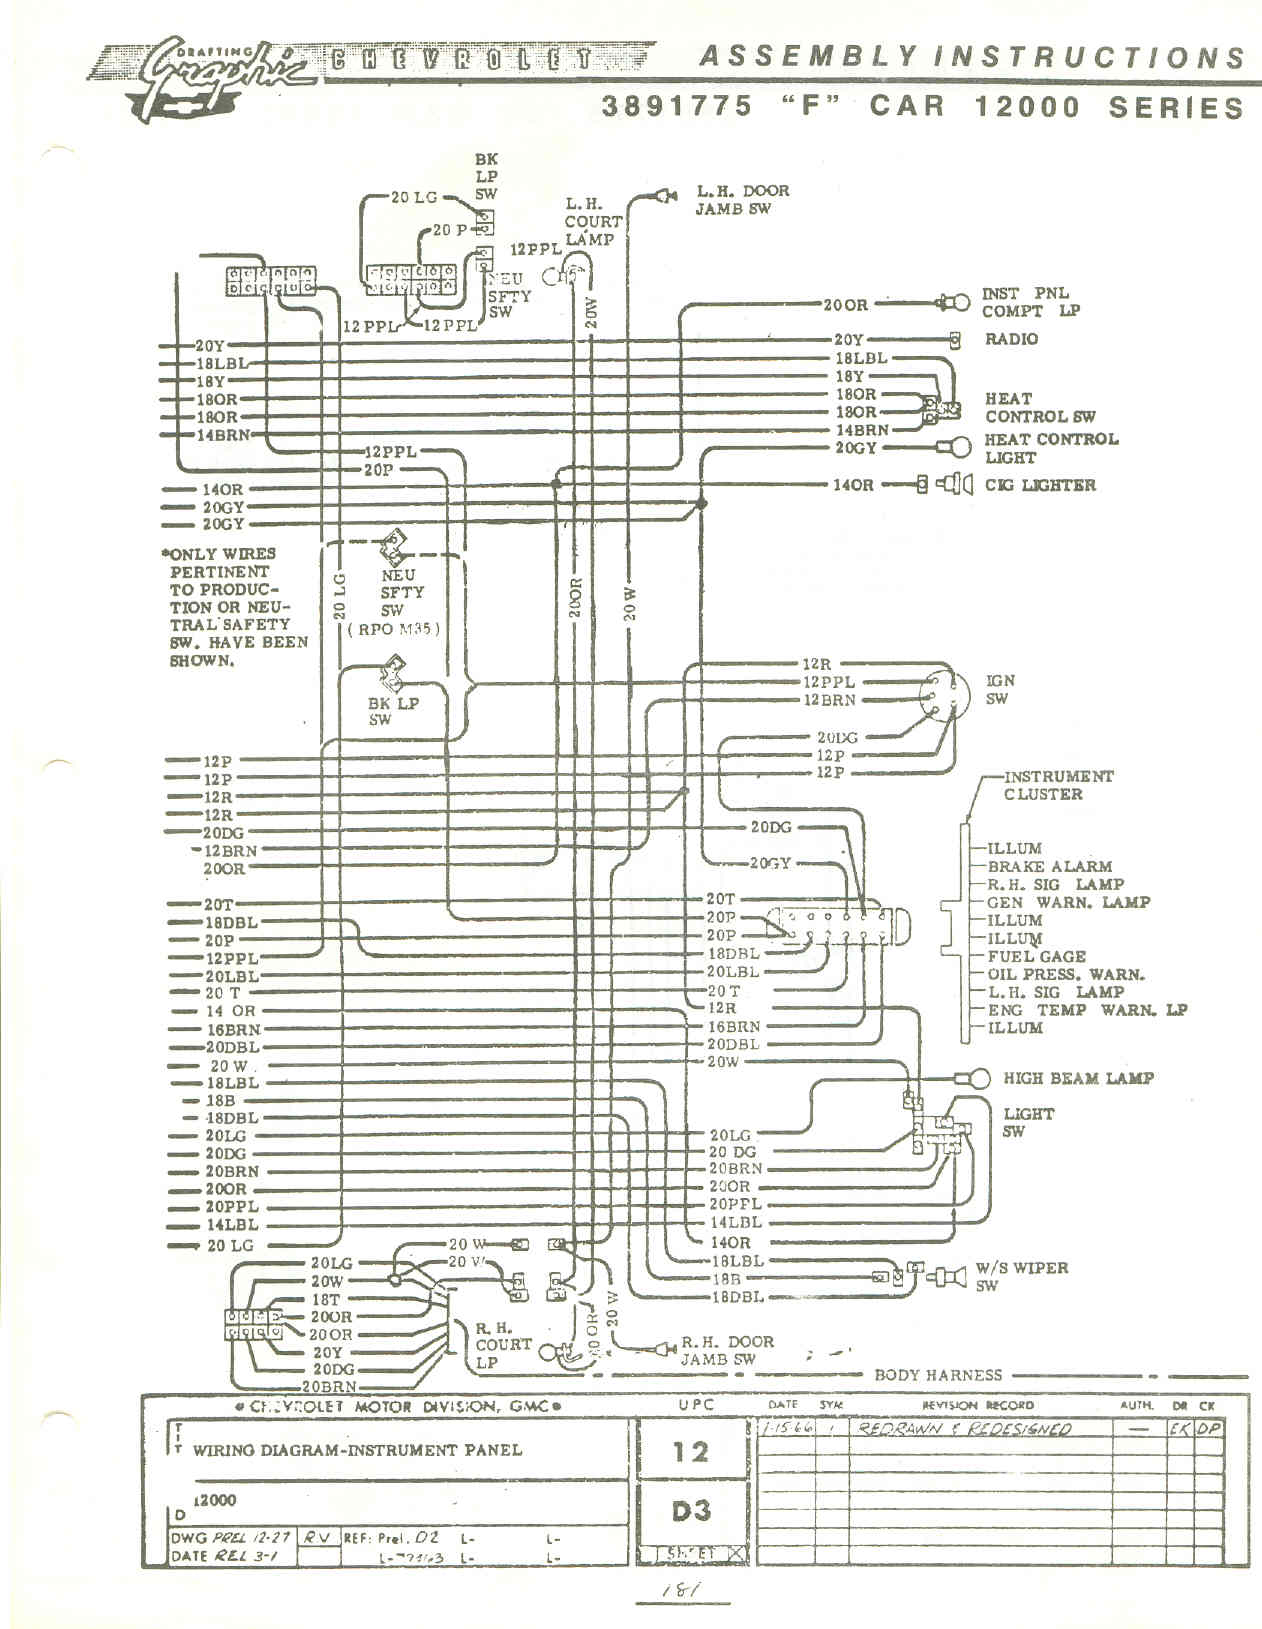 chevy tilt column wiring - Hot Rod Forum : Hotrodders Bulletin Board 1985 el camino wiring diagram Hotrodders.com